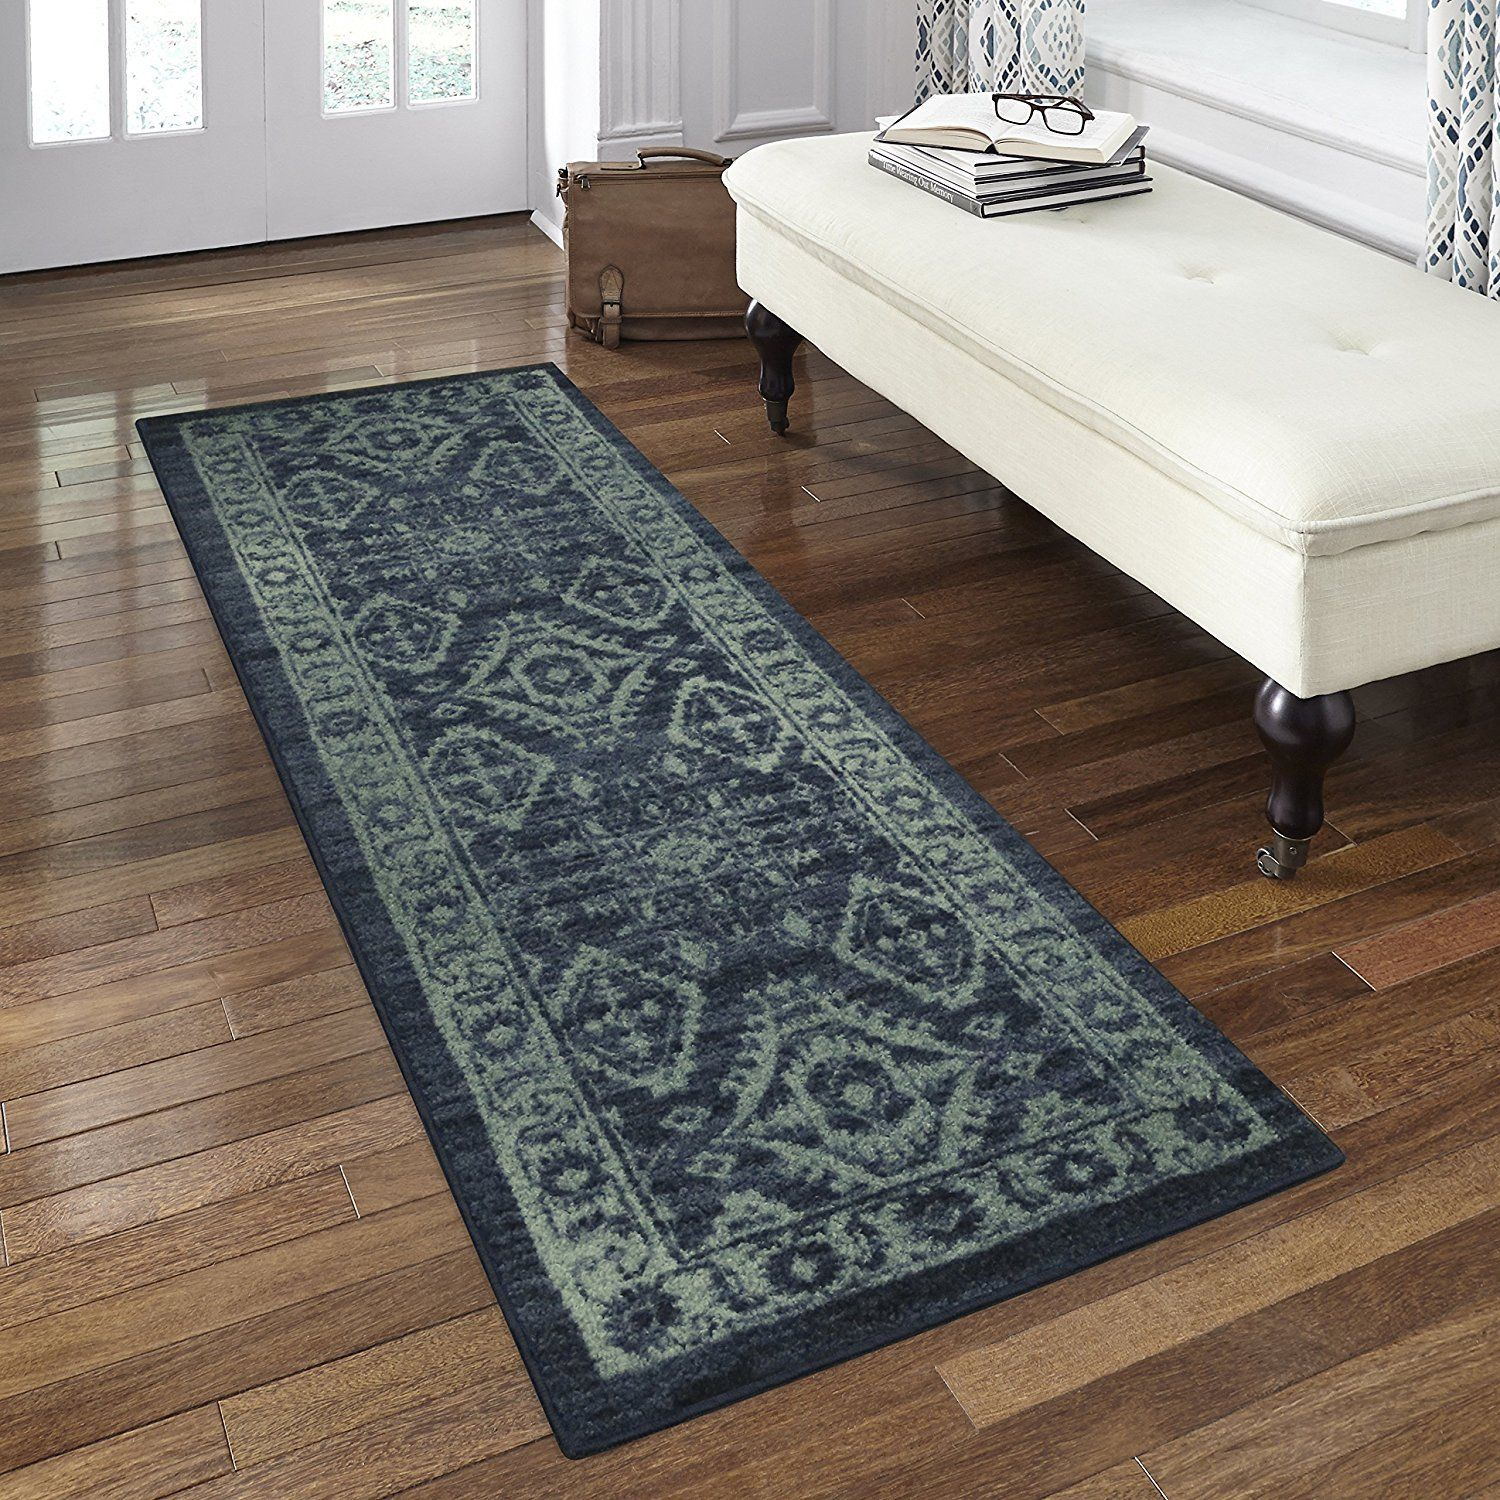 Maples Rugs Runner Rug Georgina 2 X 6 Non Skid Hallway Carpet Entry Rugs Runners For Kitchen And Entryway 2 X 6 Navy Blue G Maples Rugs Area Rugs Indoor Rugs